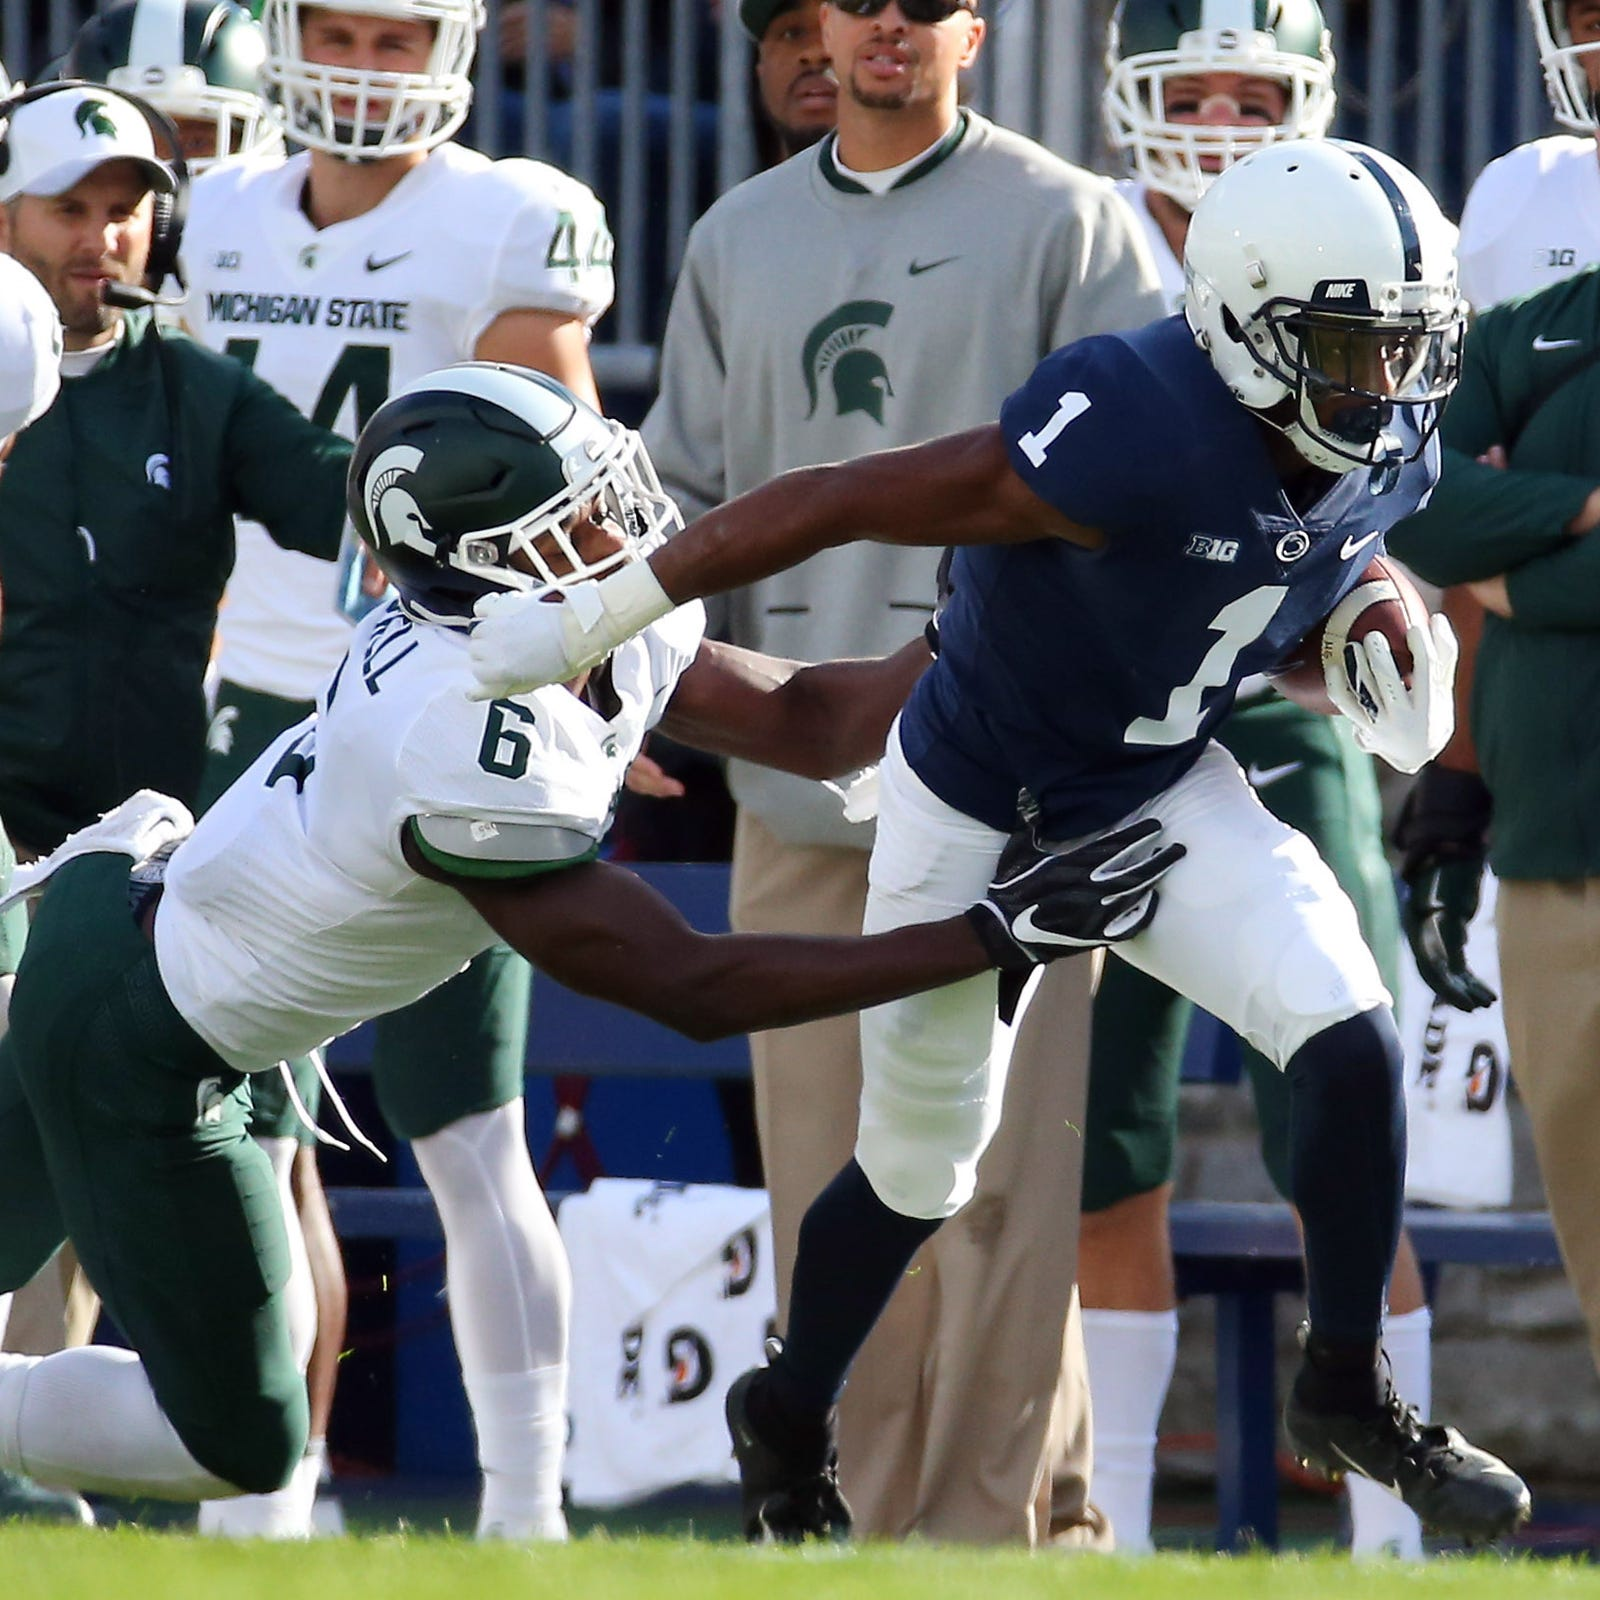 Penn State stunned as tired defense falters in final seconds, 21-17, to Michigan State